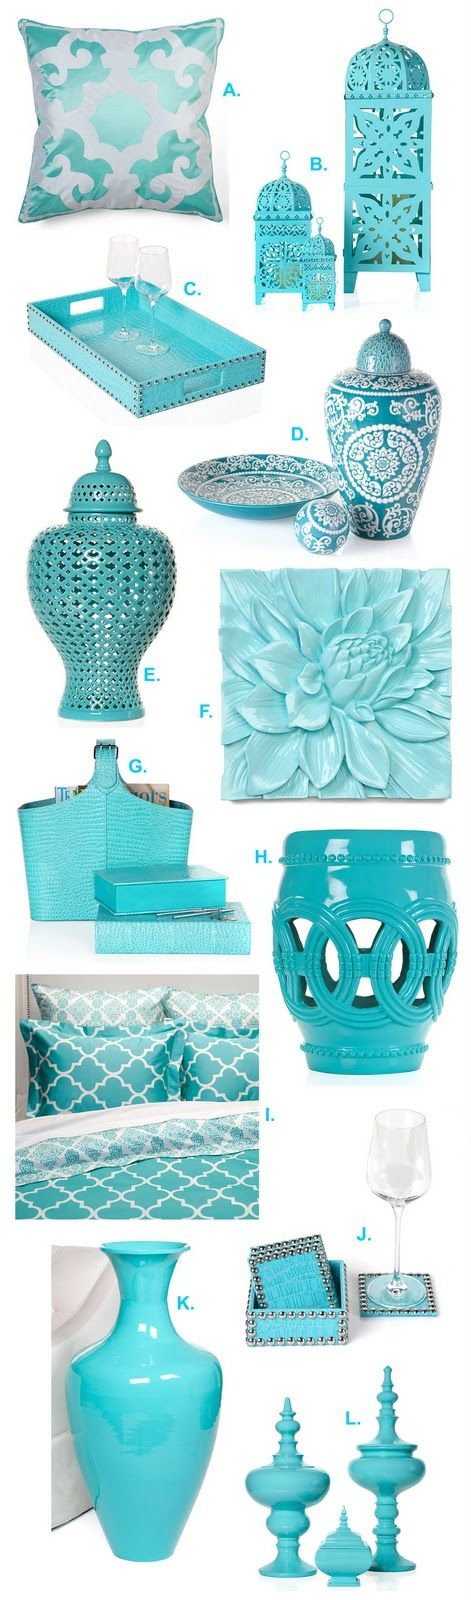 Teal Bathroom Accessories Uk best 25+ teal bathroom accessories ideas on pinterest | teal bath